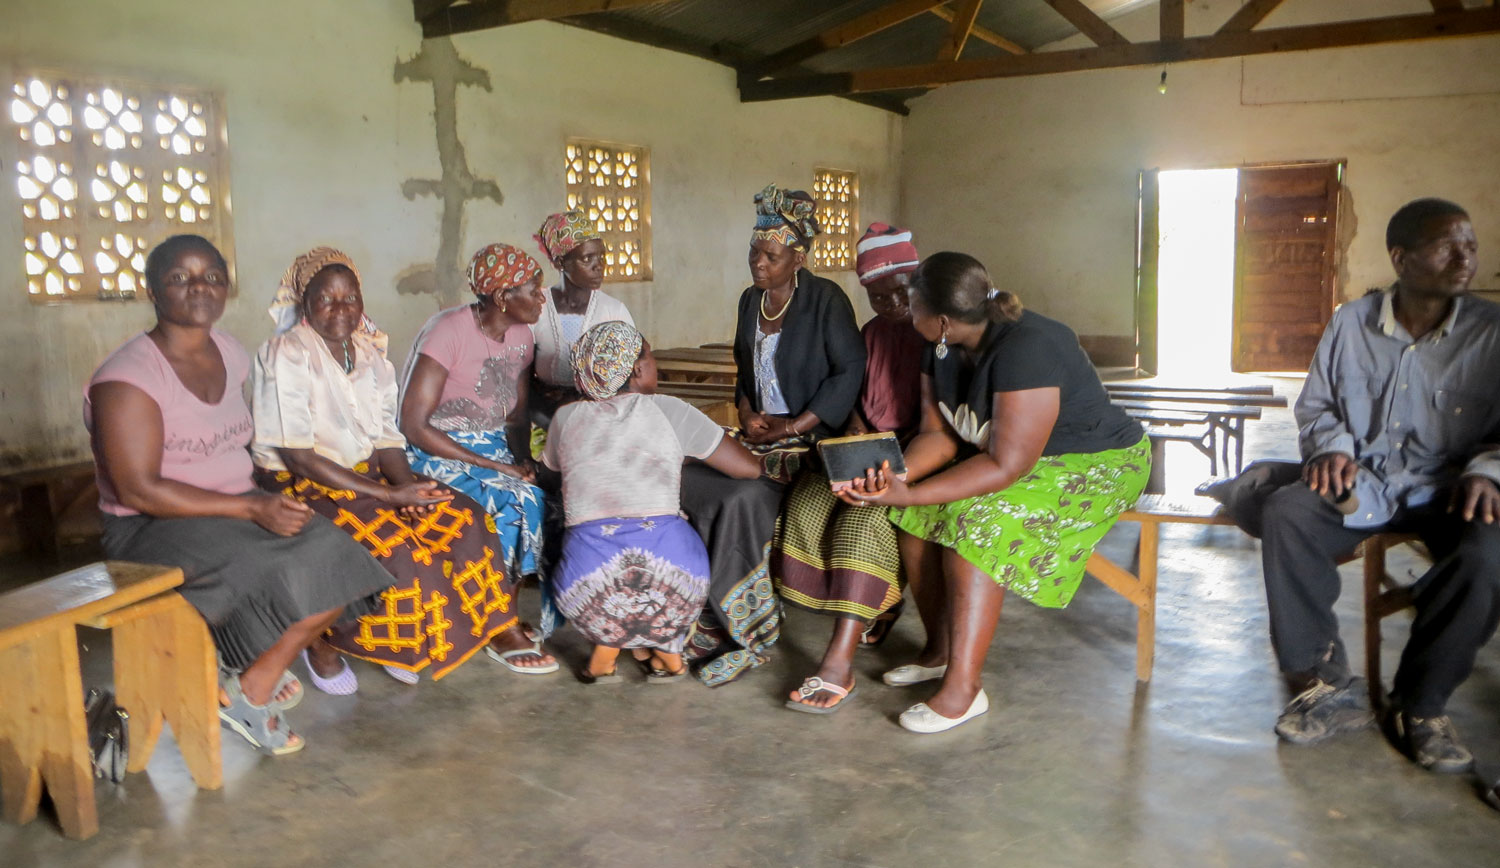 The Care Workers from the Matsinho Care Point meet on a regular basis to pray and share the word of God together.